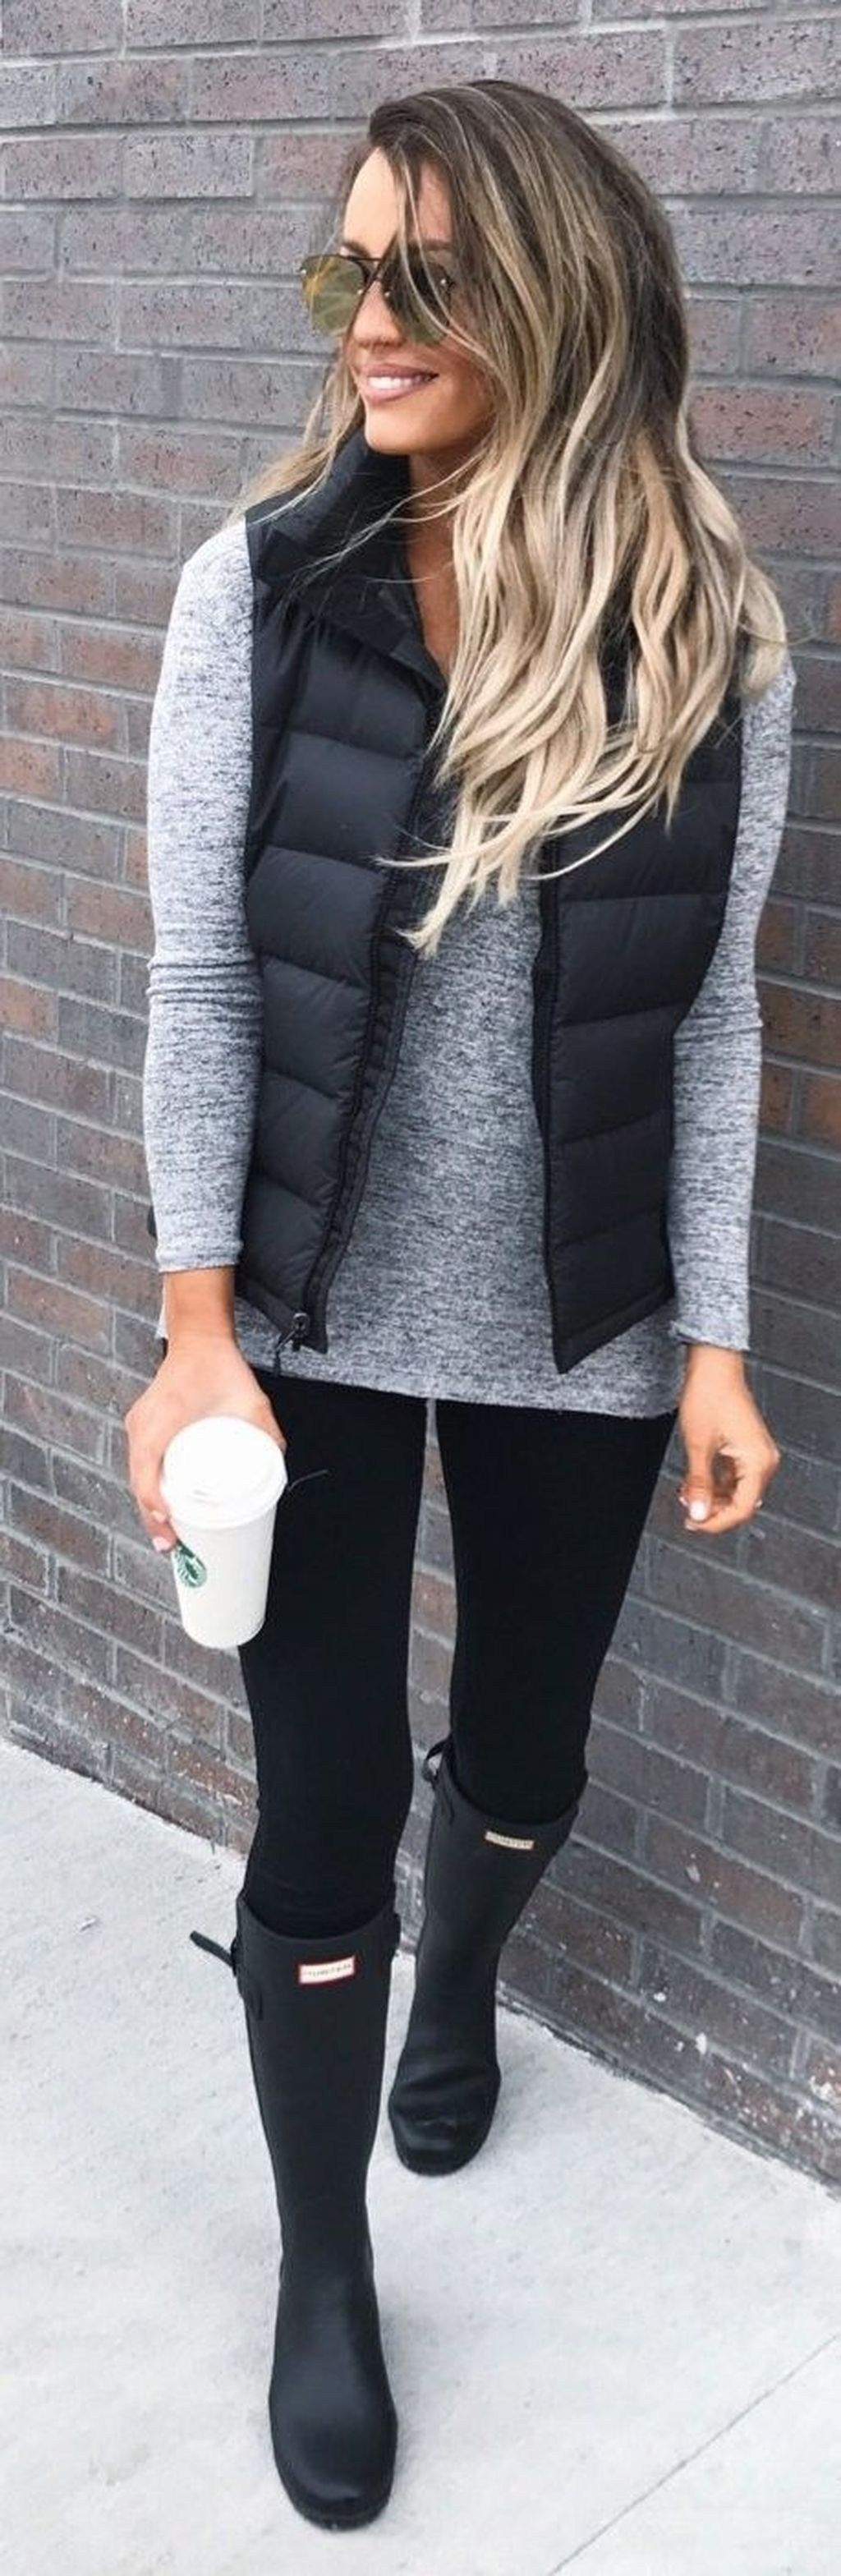 38 totally perfect winter outfits ideas you will fall in love with